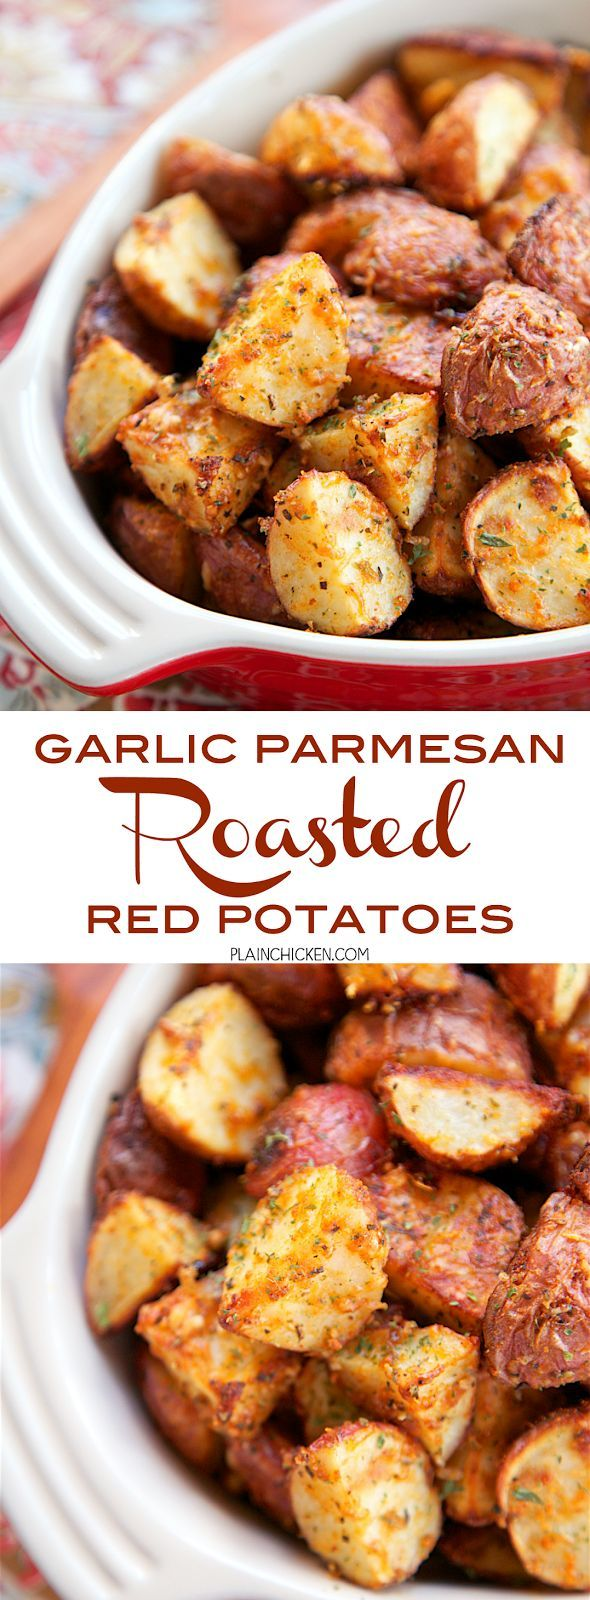 cool Garlic Parmesan Roasted Red Potatoes - red potatoes tossed in garlic, onion, pap...by http://dezdemooncooking.gdn